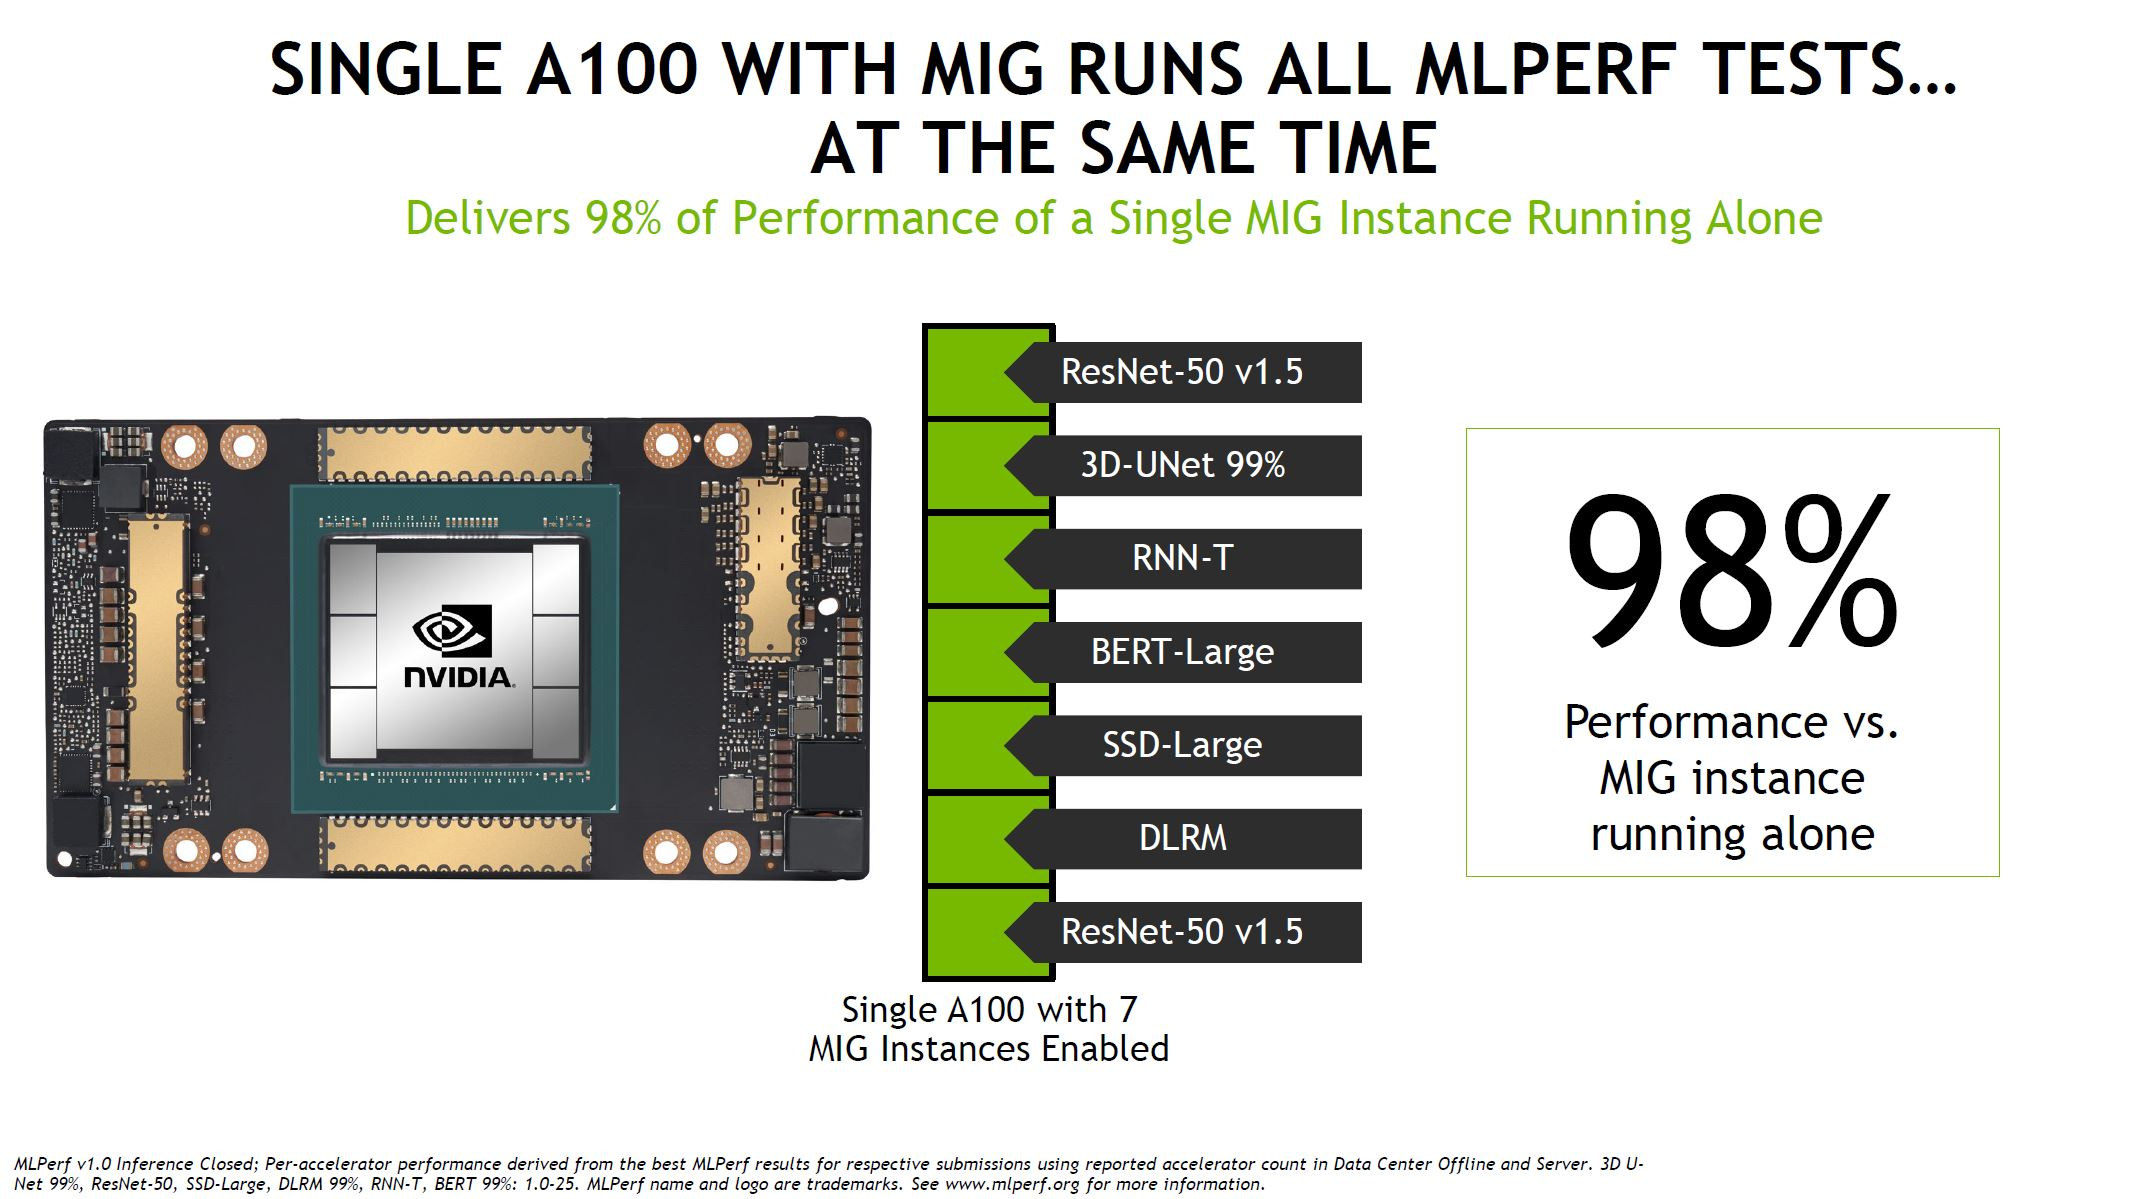 MLPerf Inference NVIDIA A100 MIG